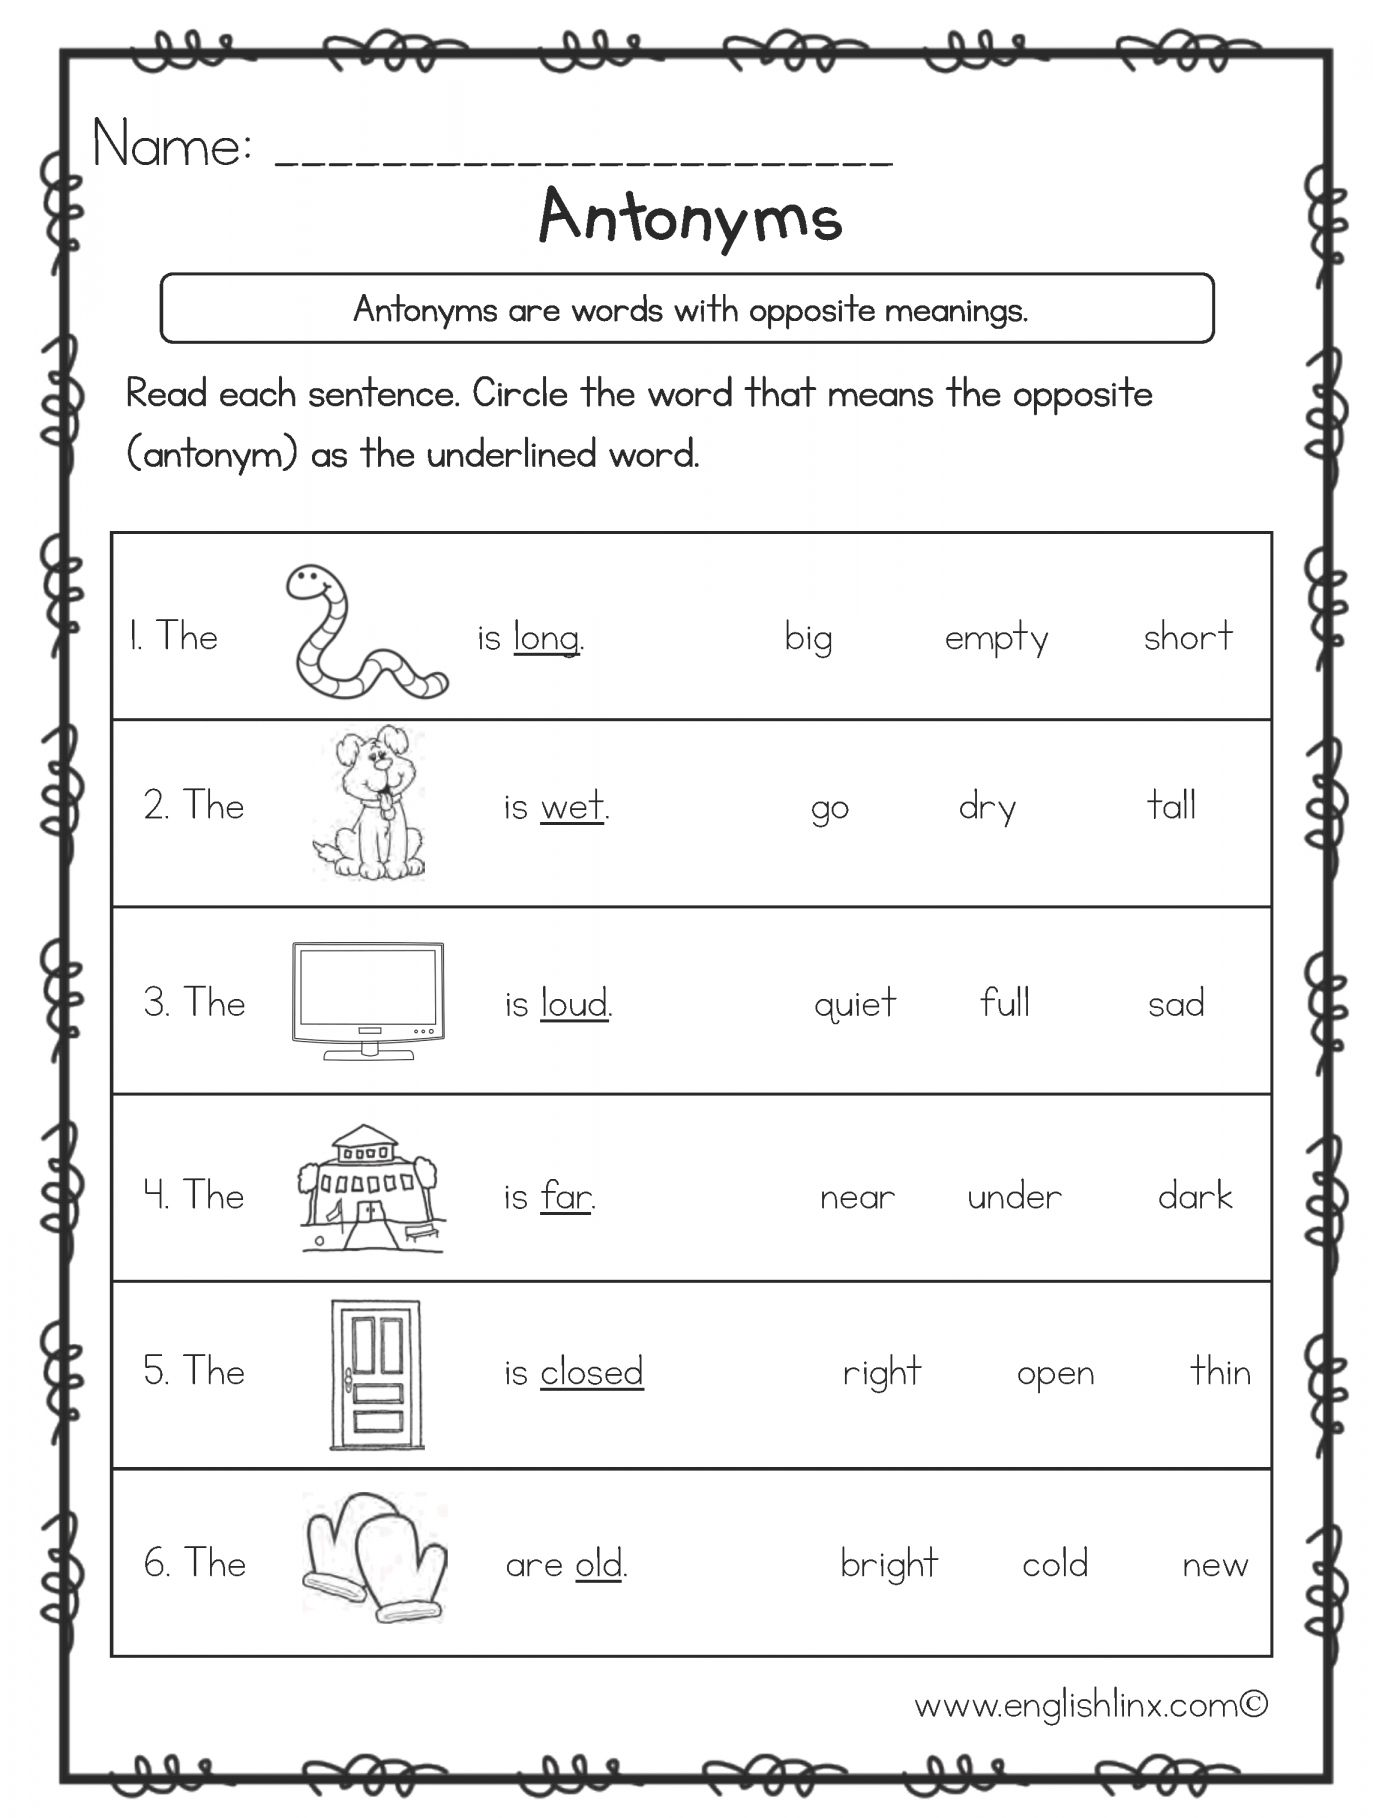 7 Antonyms Worksheet For Kindergarten